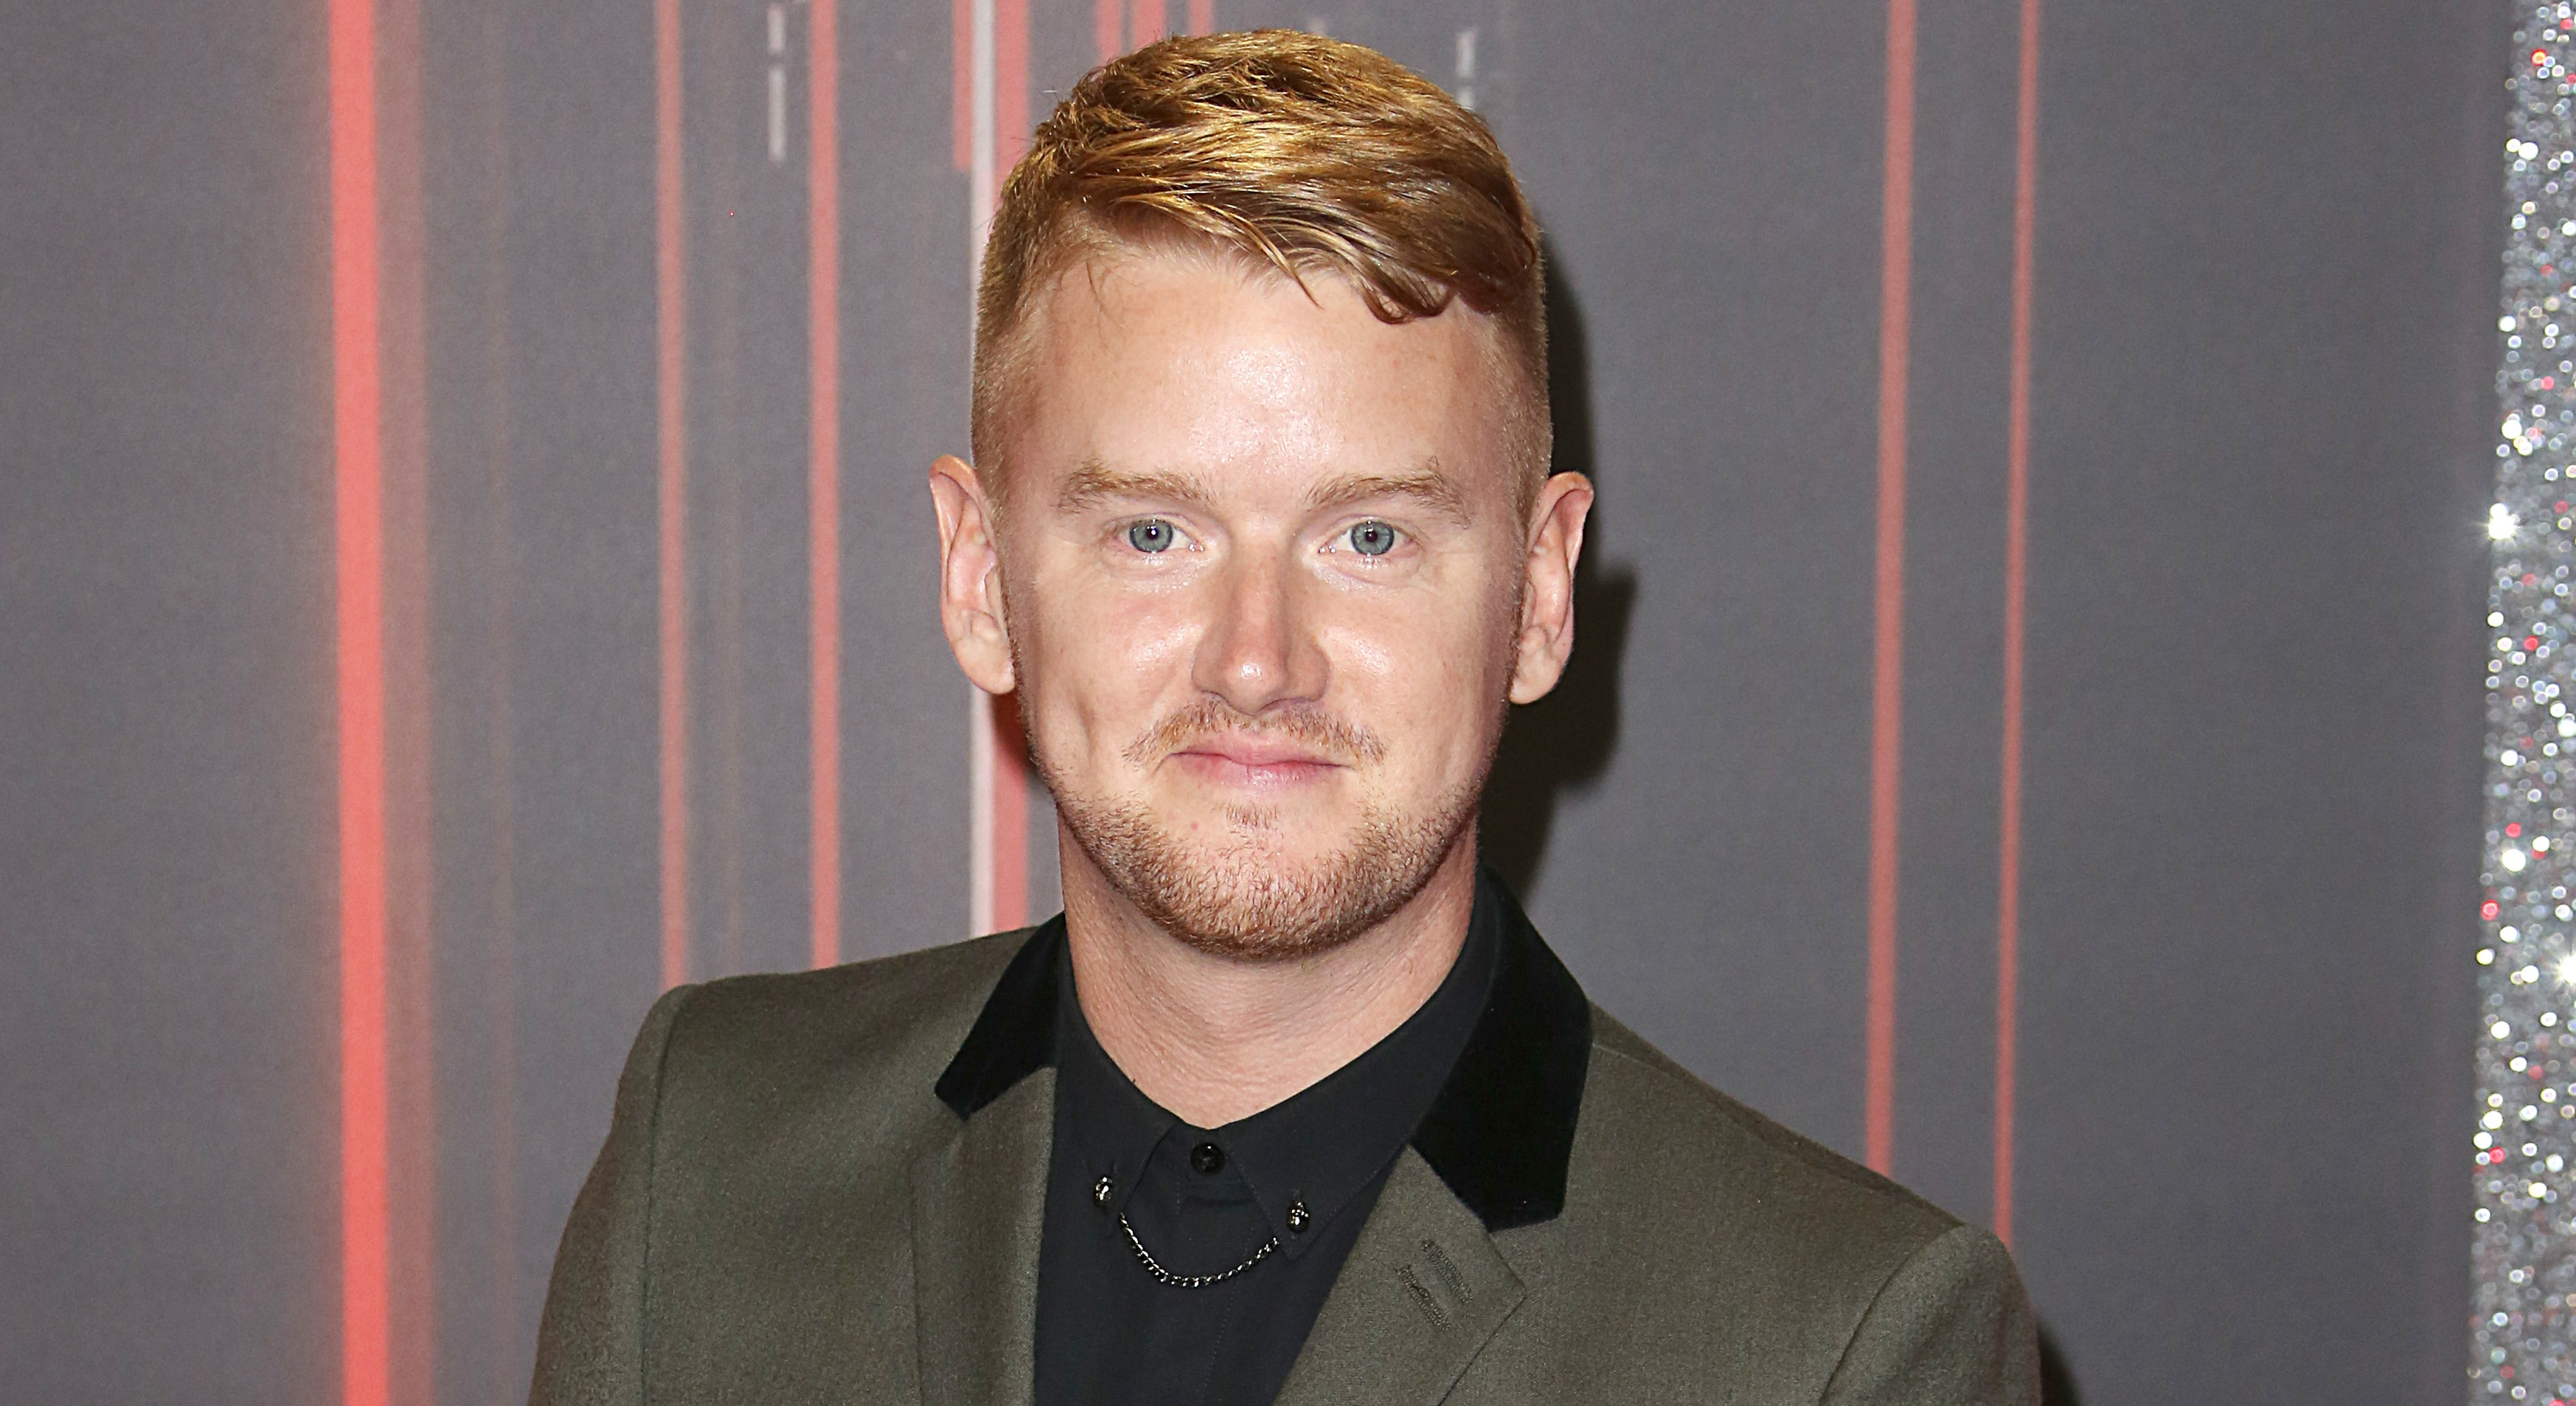 Coronation Street actor Mikey North becomes a dad again as his wife gives birth to their second child